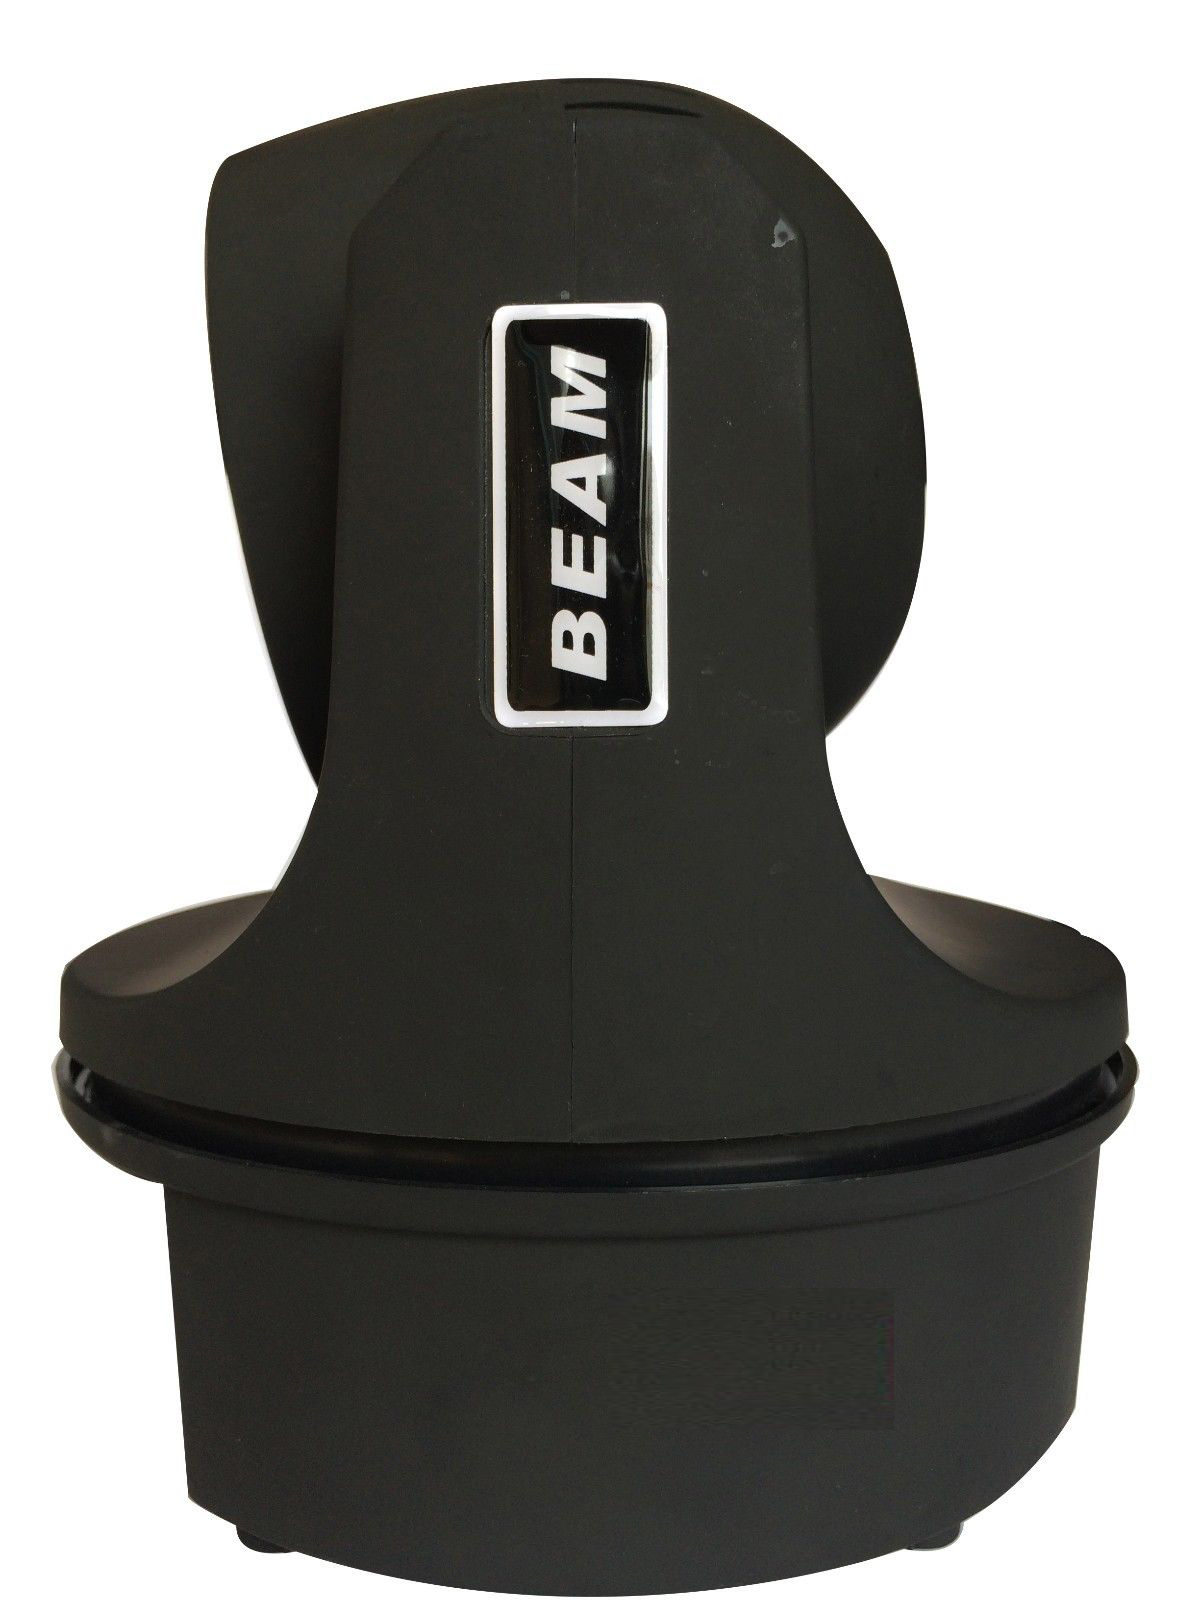 Mặt bên Đèn LED moving head Bee Eye 6 mắt